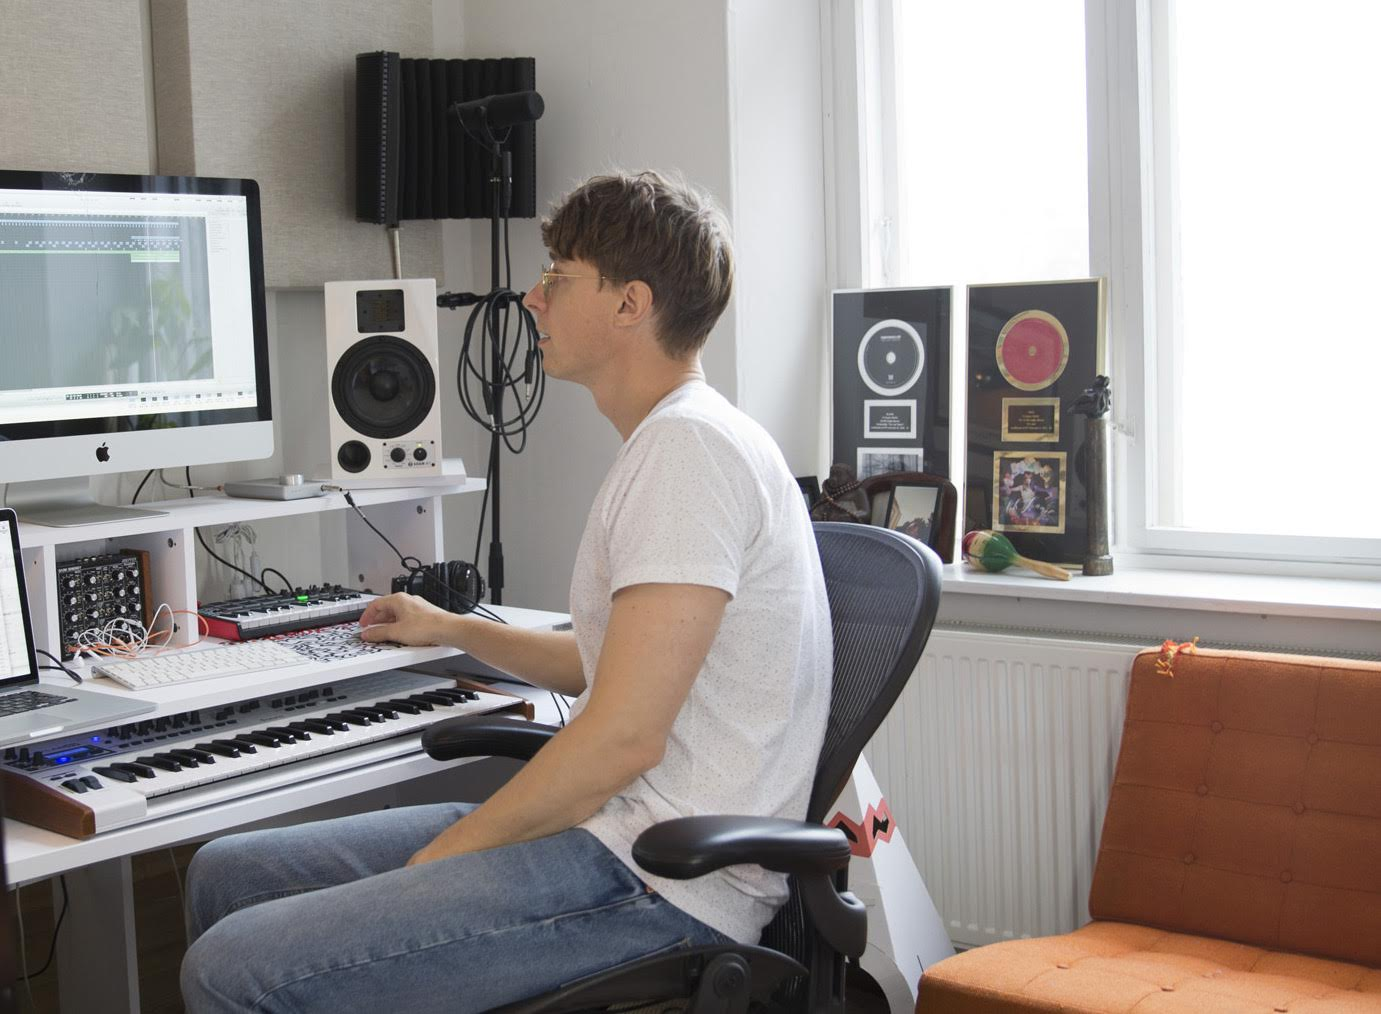 Kasper Bjorke in his home studio. How I live, The Spaces. Photography Anne Mie Dreves